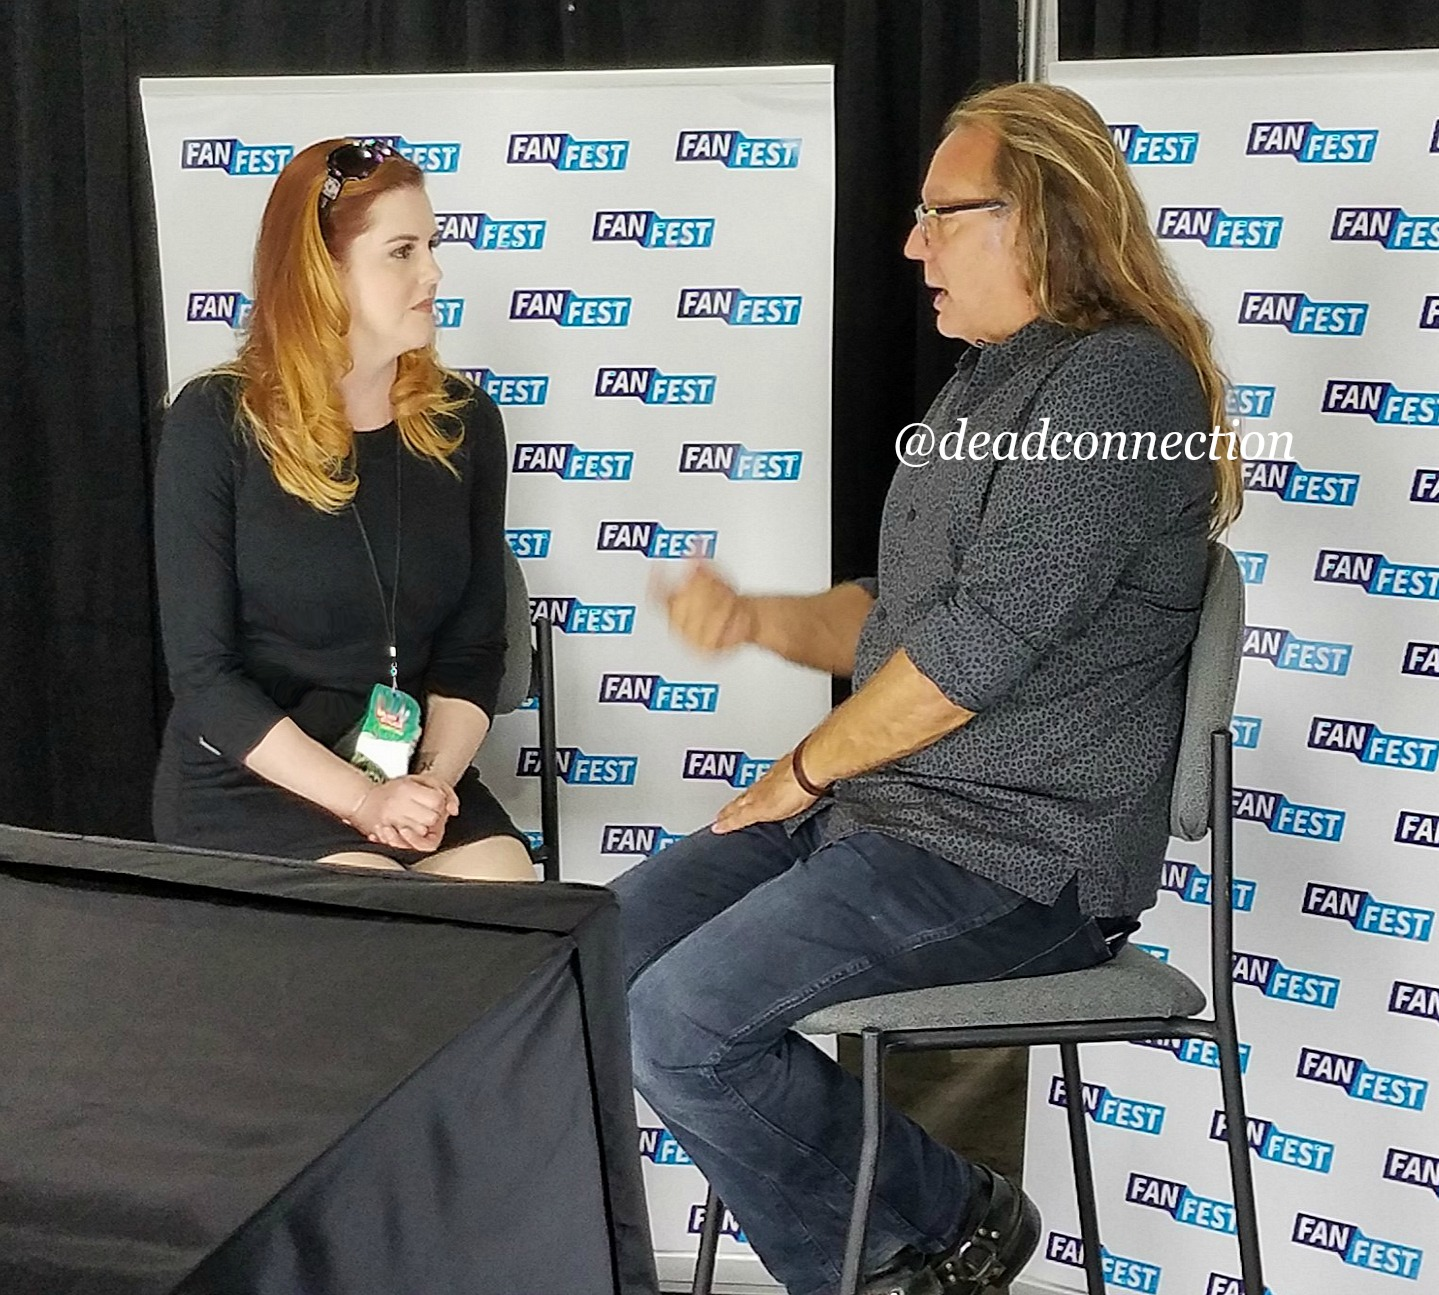 TDC Exclusive: A Conversation With Greg-Nicotero